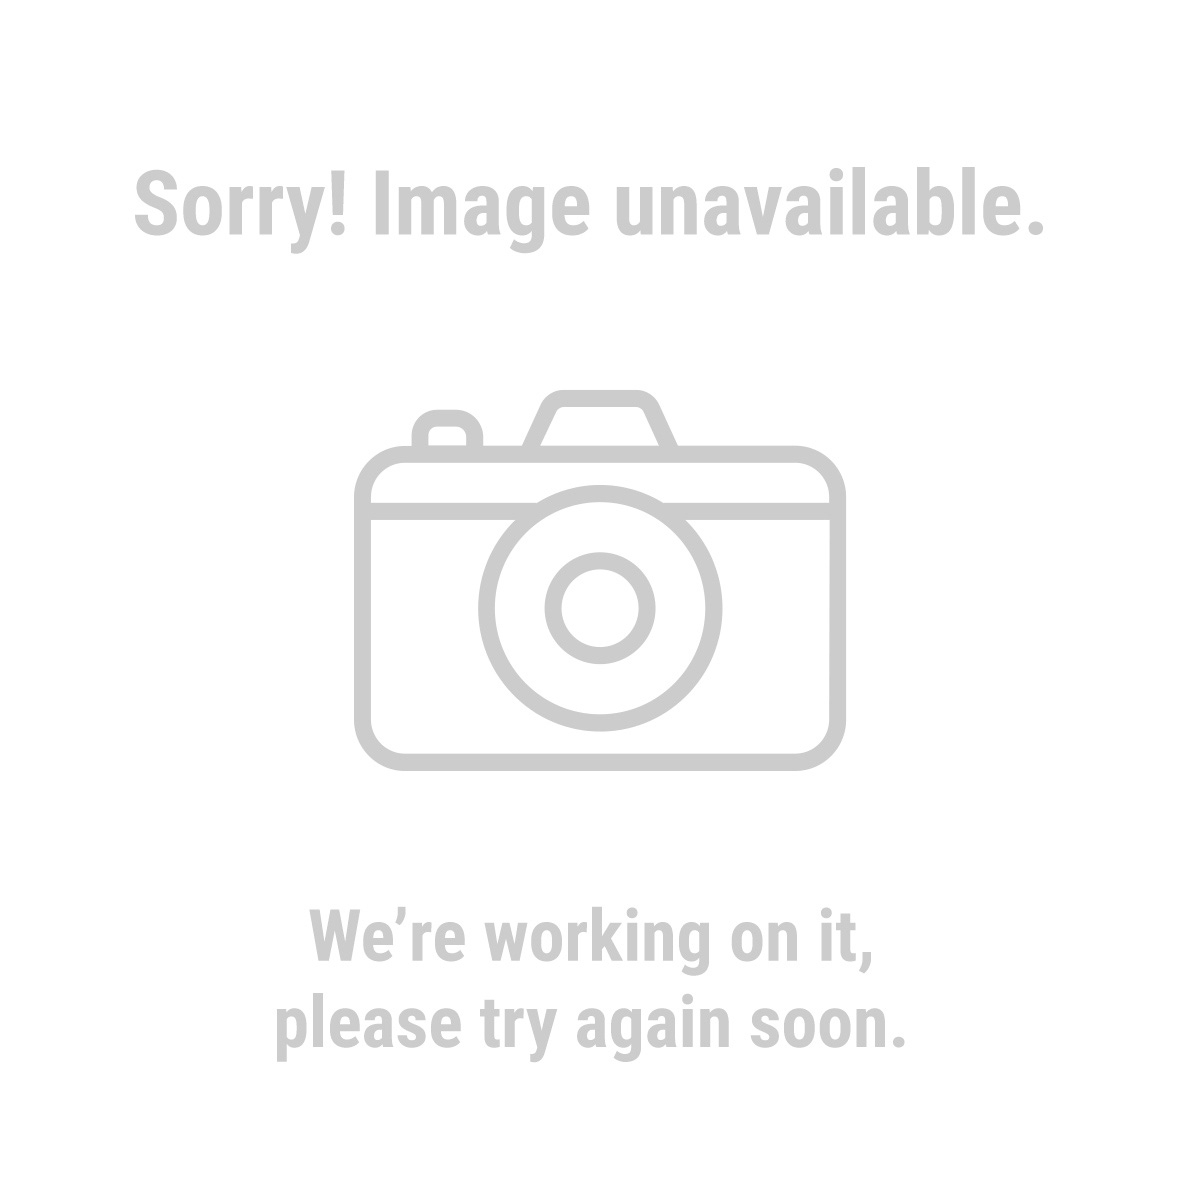 Western Safety 3604 Reflective Mesh Vest